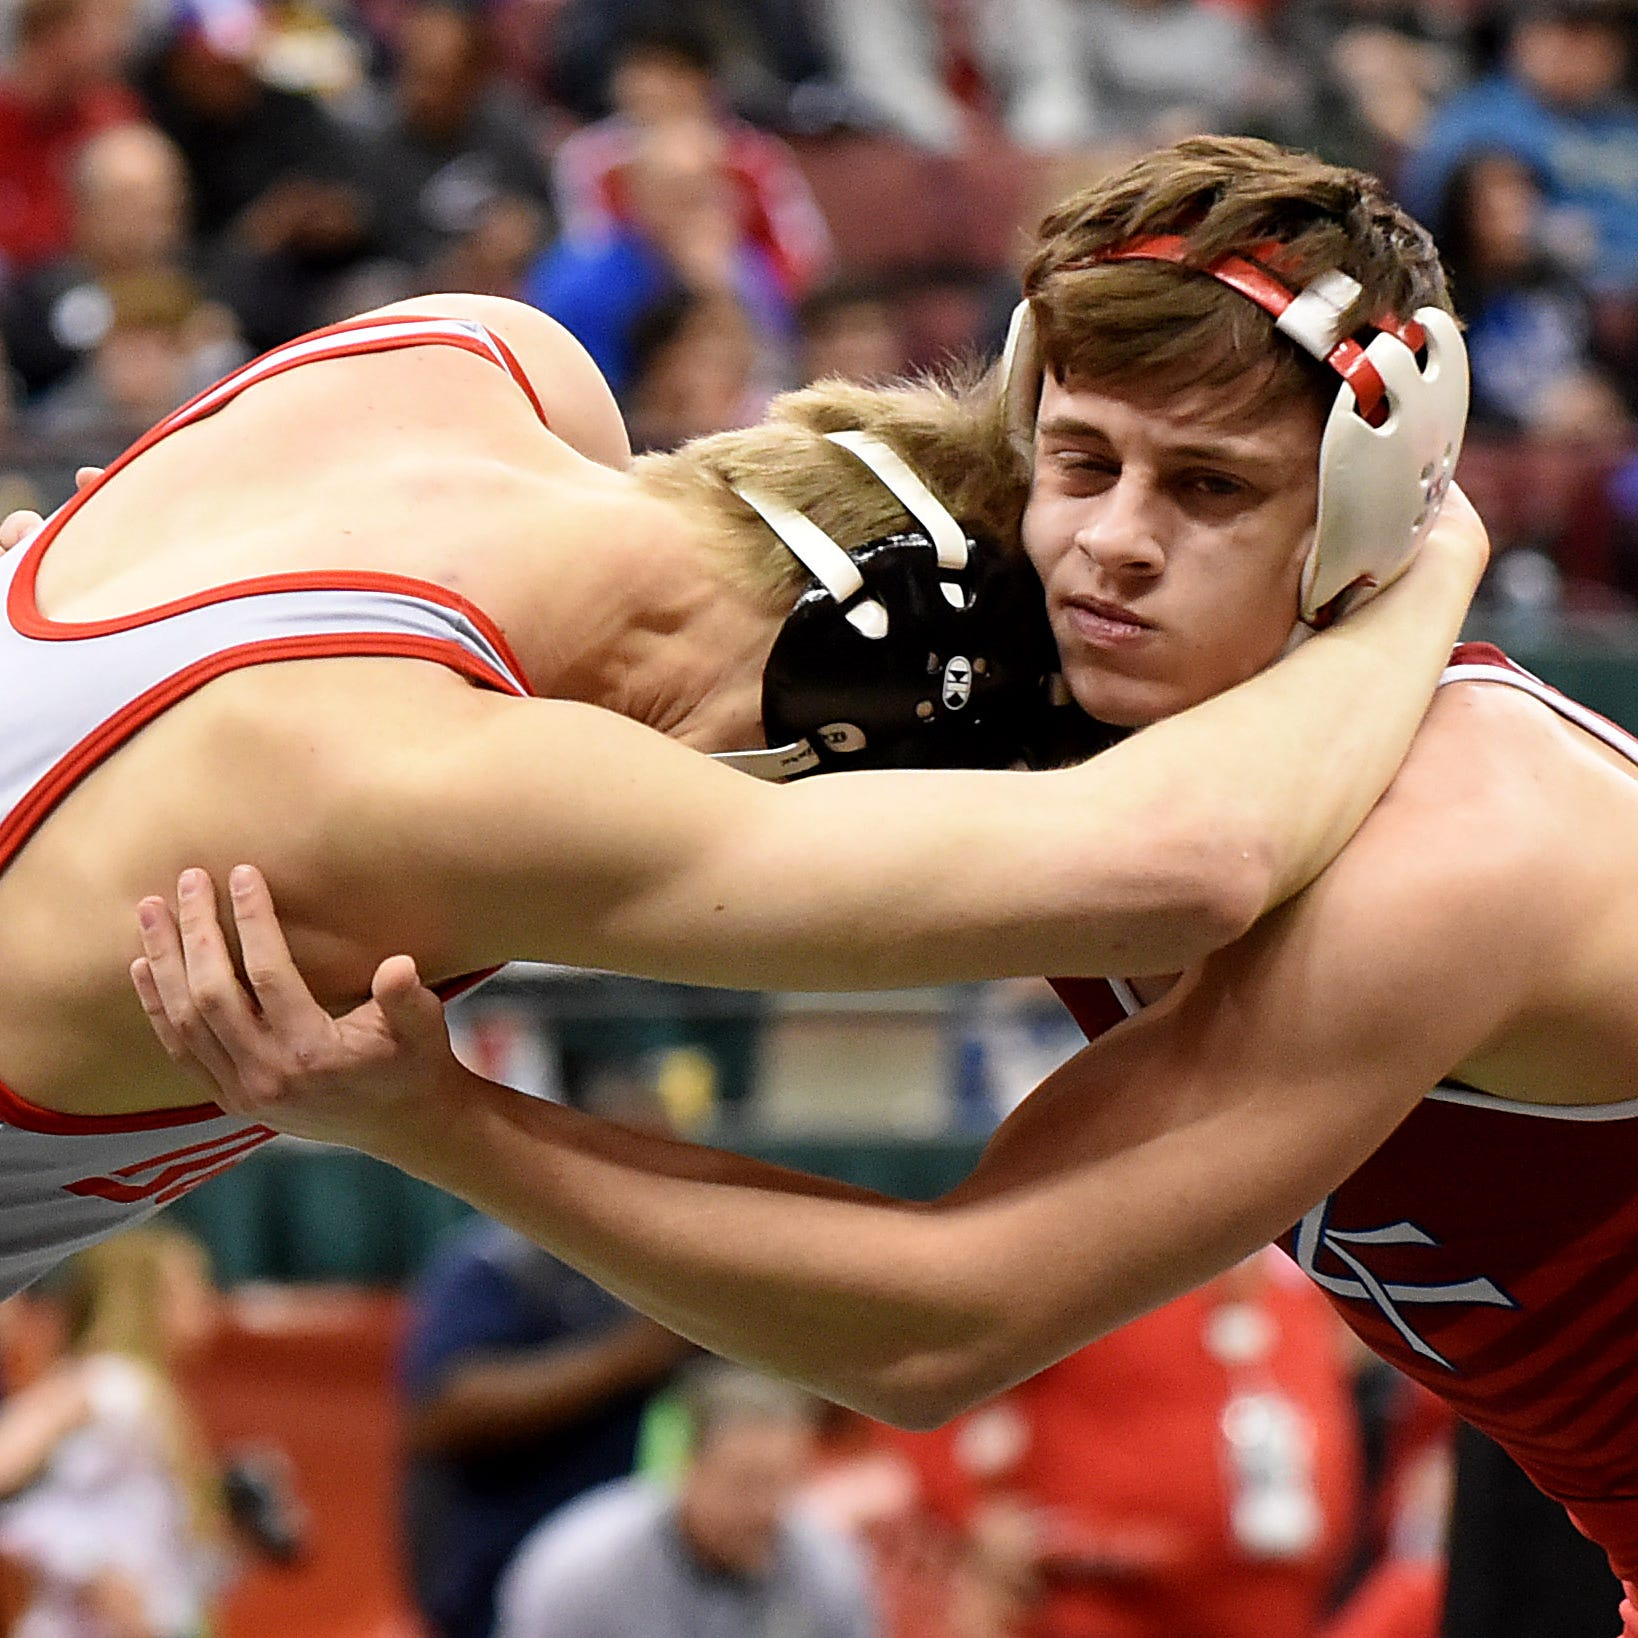 State wrestling: ZT's Hoselton, WF's Moll conclude seasons on second day of action